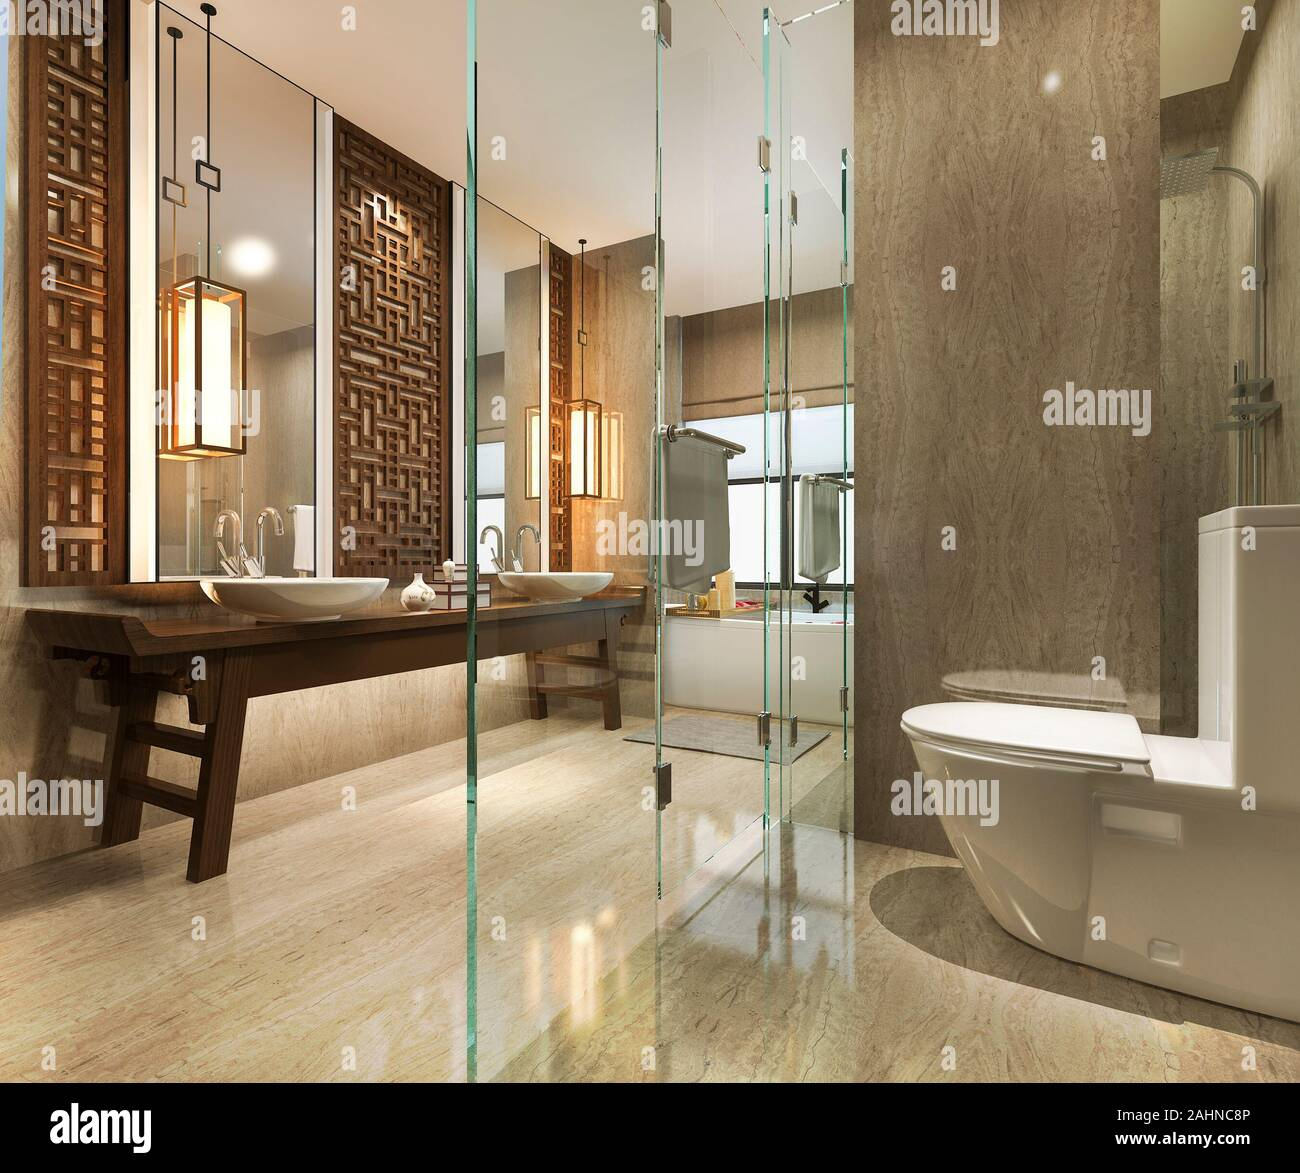 3d Rendering Modern Bathroom With Luxury Tile And Chinese Wall Decor Stock Photo Alamy